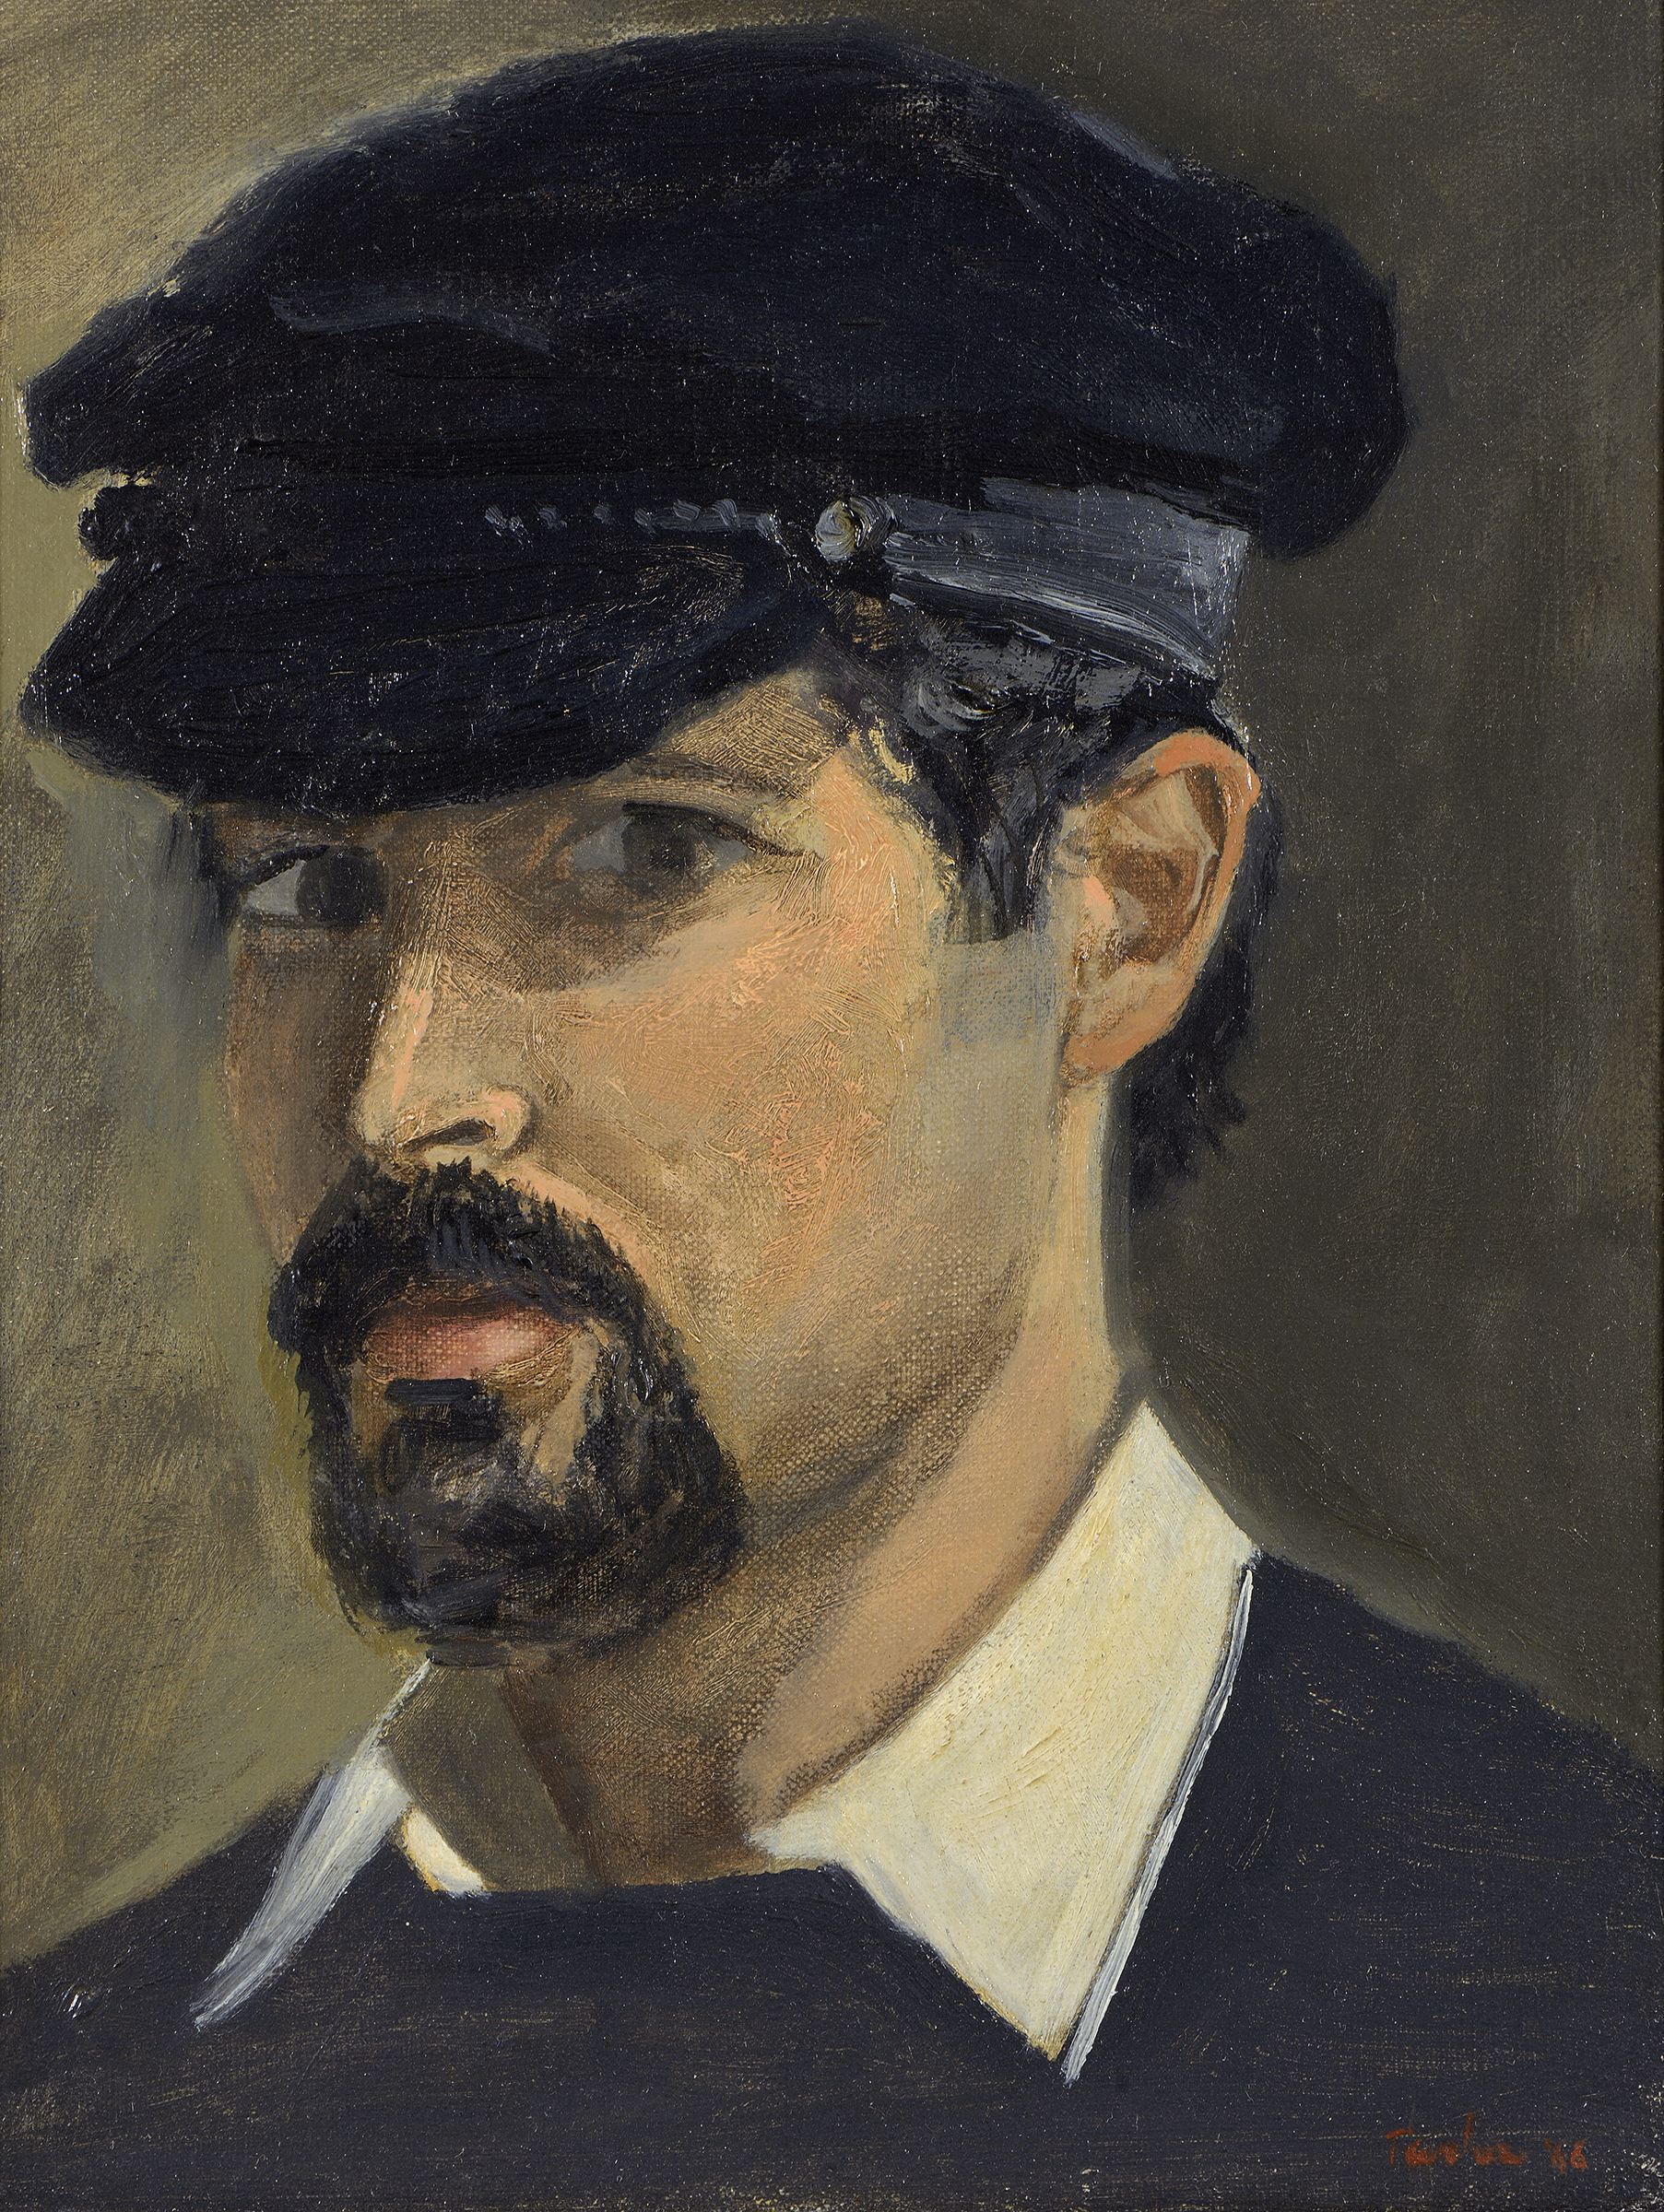 self portrait  in oil on linen in the  dionysis fotopoulos collection,  painted in 1966 in athens, greece, and included in an exhibition of self portraits organized by the  national bank of Greece  in december, 2017.